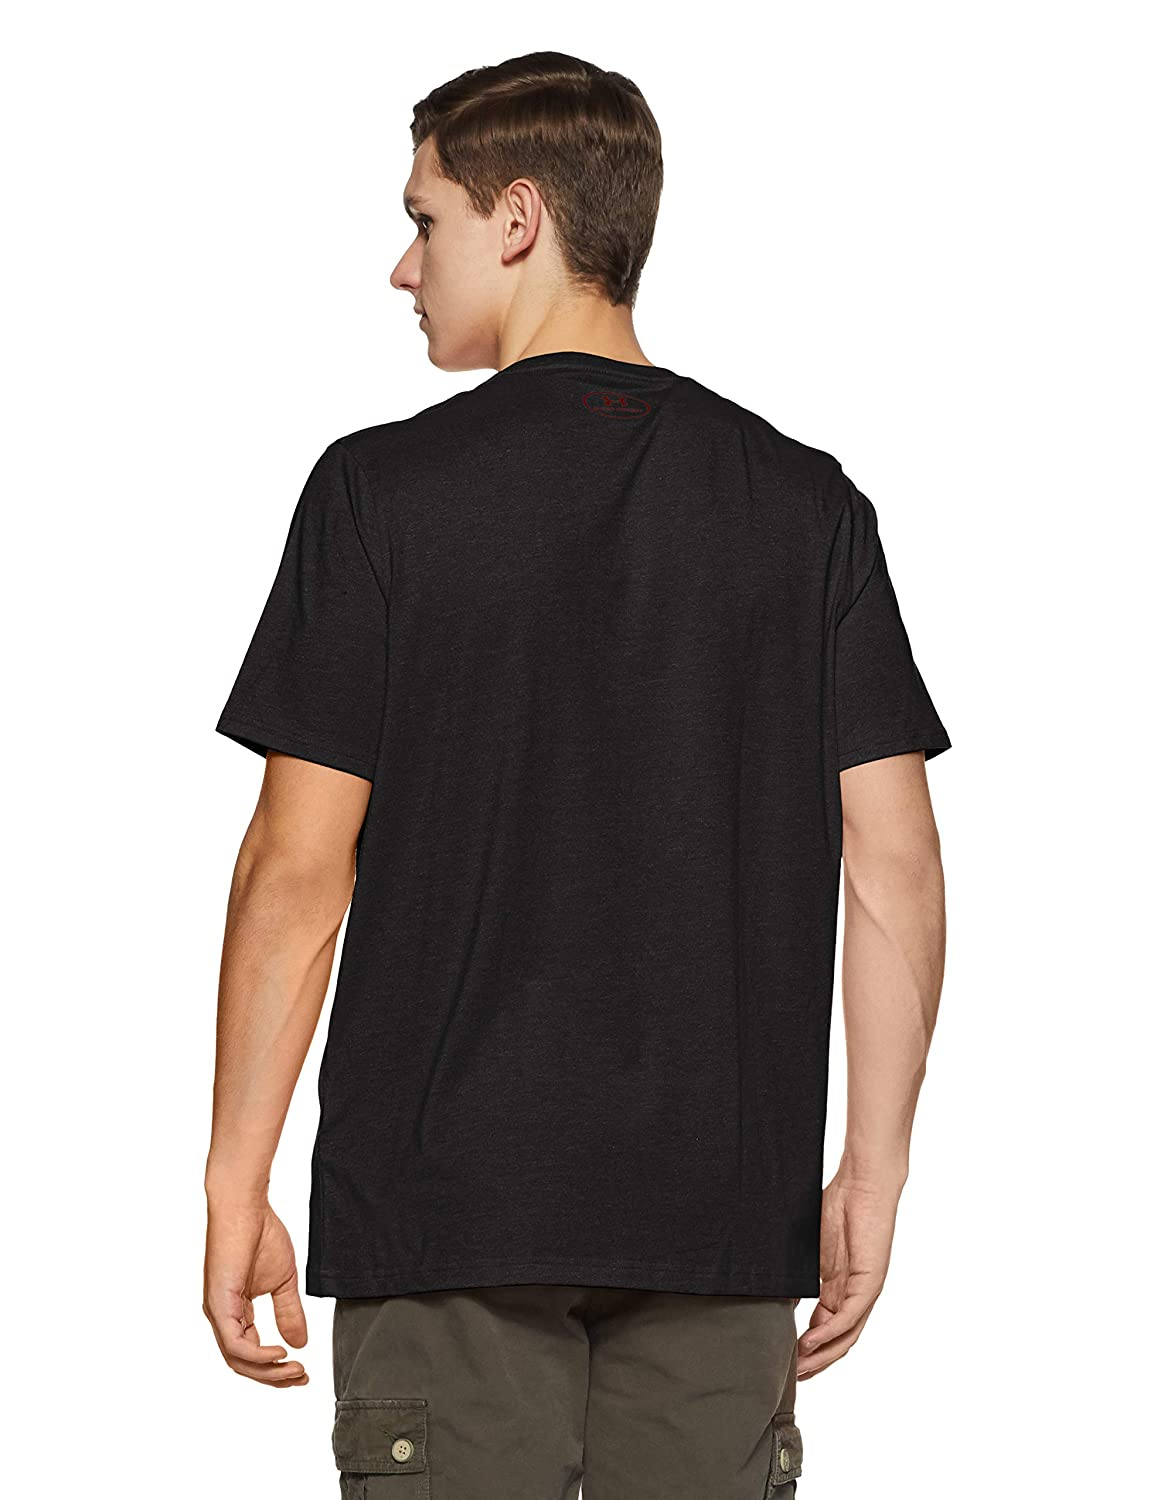 Under Armour Mens Charged Cotton Left Chest Lockup T-Shirt